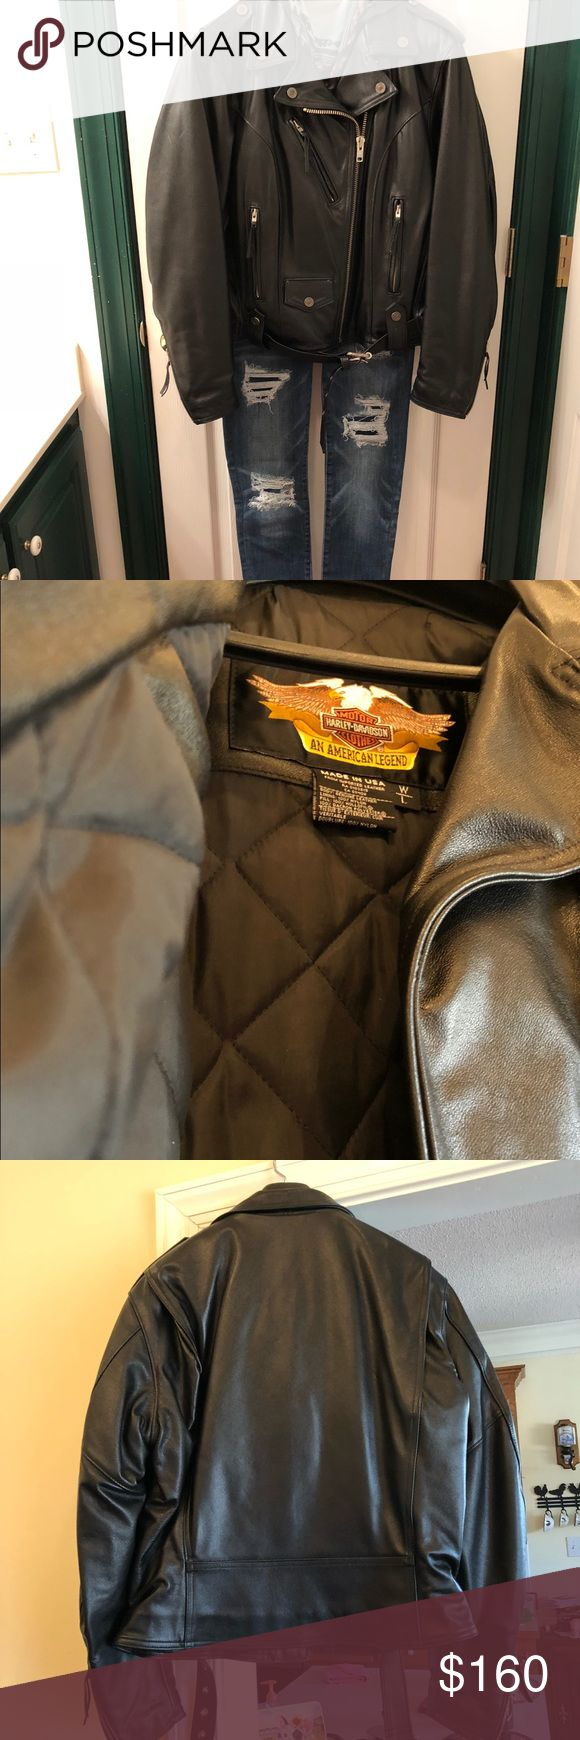 Women's Harley Davidson Leather Jacket Women's size LG, Harley Davidson jacket. Full zip front with buckle, zippers on the sleeves. Quilted inside for extra warmth. Only been worn twice. Harley-Davidson Jackets & Coats